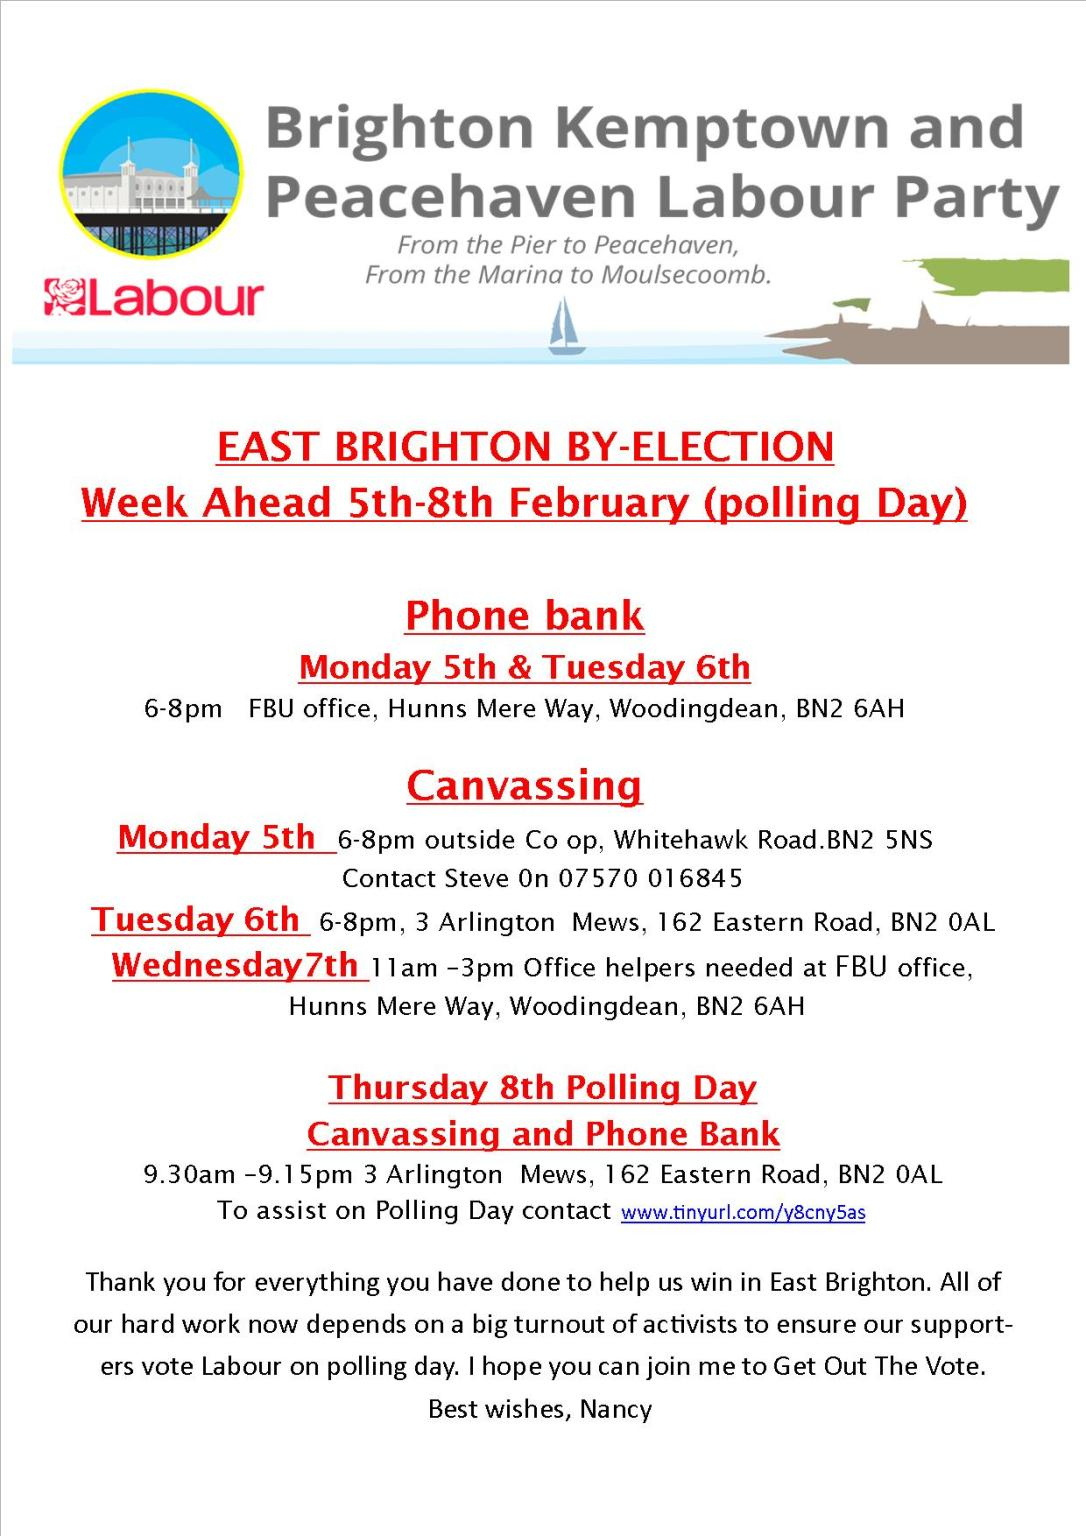 EB final week to polling day_02.18